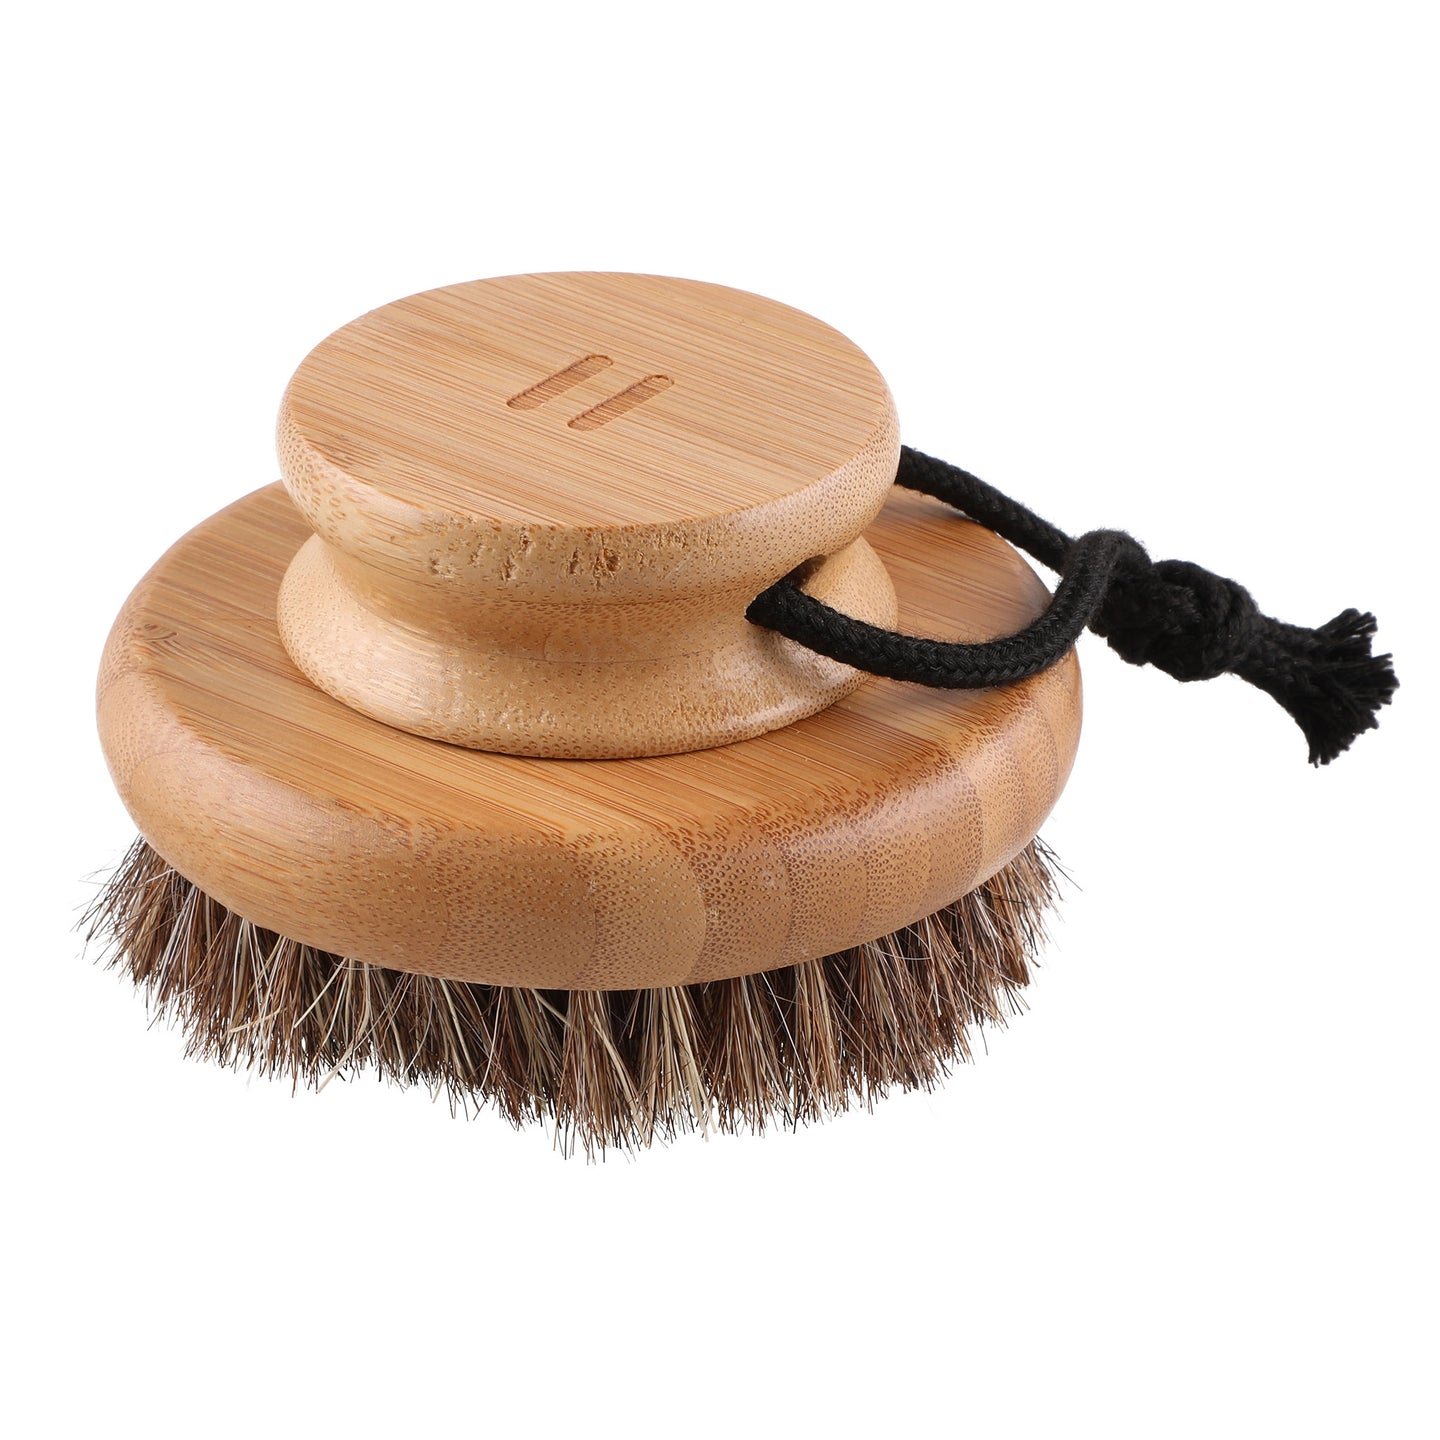 Rento Wooden Body Brush Bamboo & Natural Hair Default Title Bath Brush Finnmark Sauna